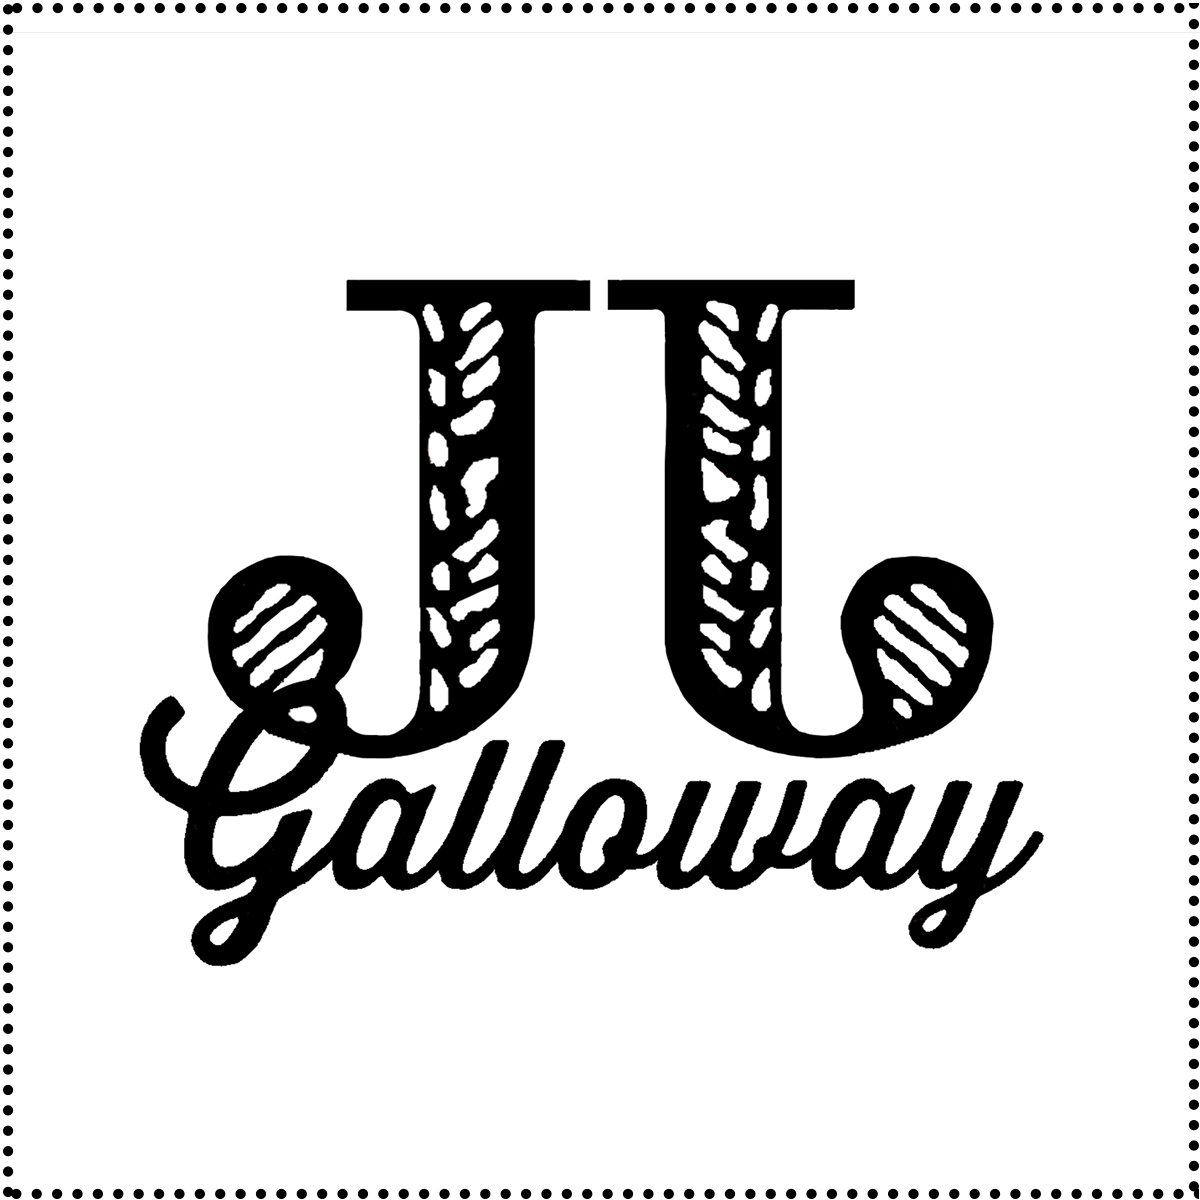 JJ Galloway Art Studio